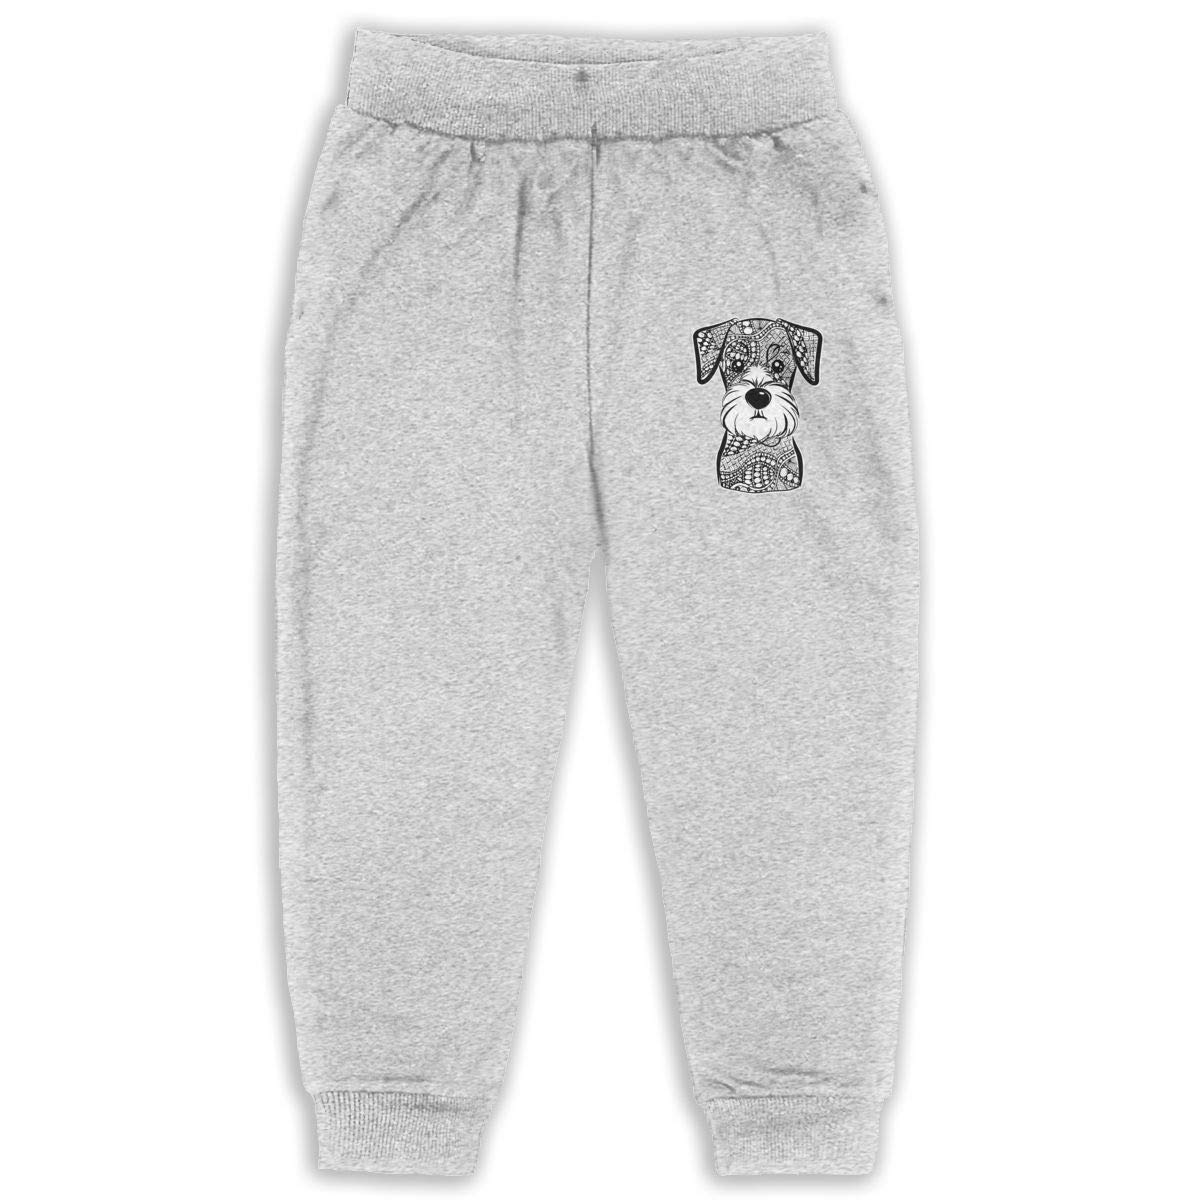 LFCLOSET Hr Mini Schnauzer Dog Children Active Jogger Sweatpants Basic Elastic Sport Pants Gray